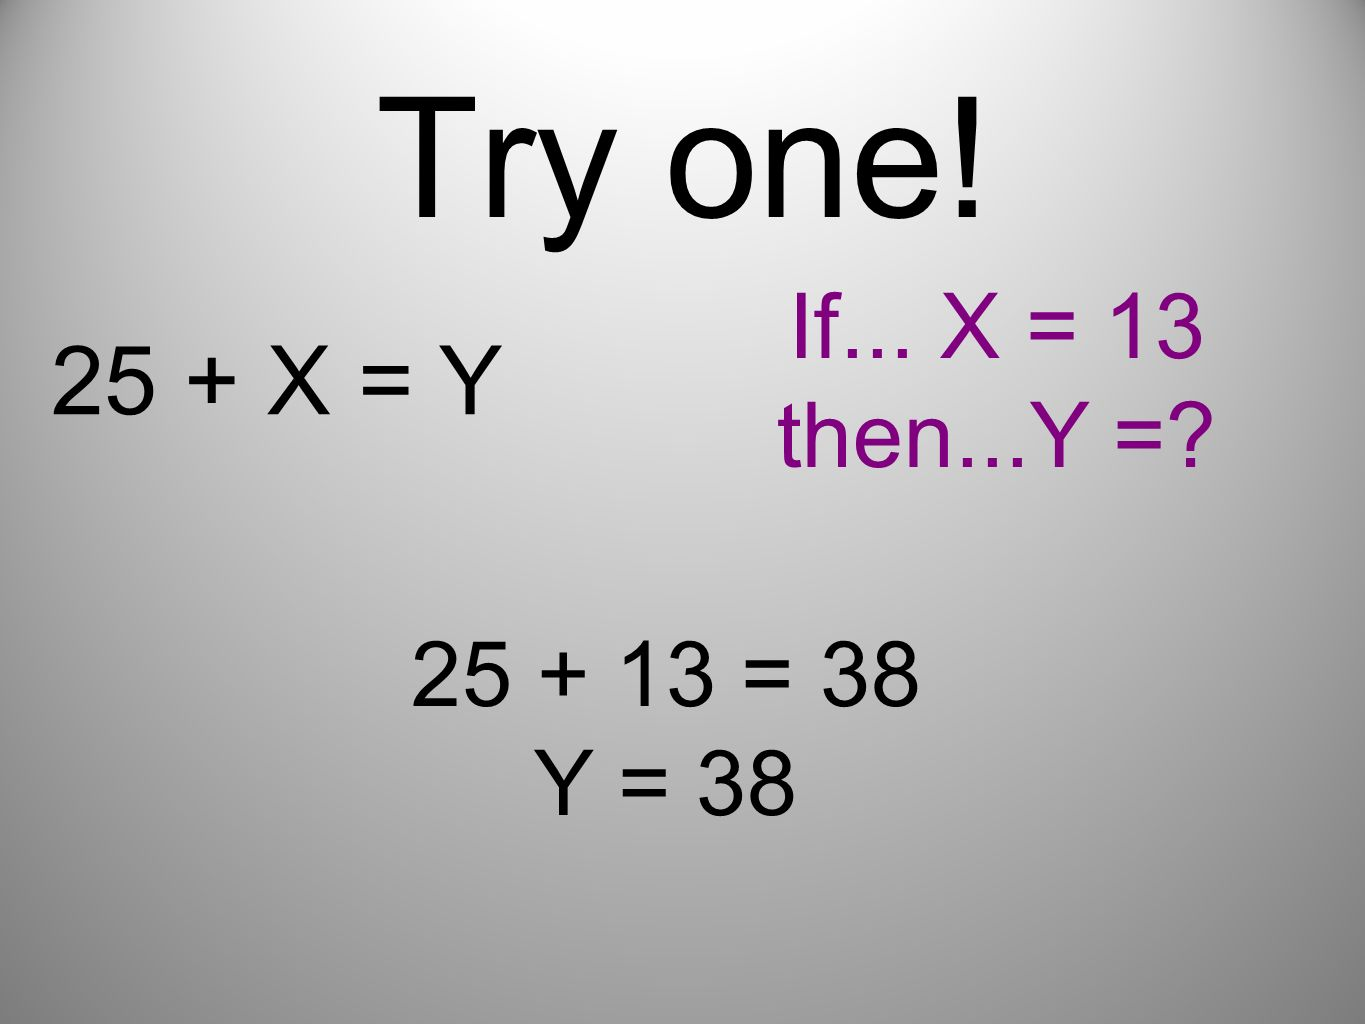 Try one! If... X = 13 then...Y = 25 + X = Y = 38 Y = 38